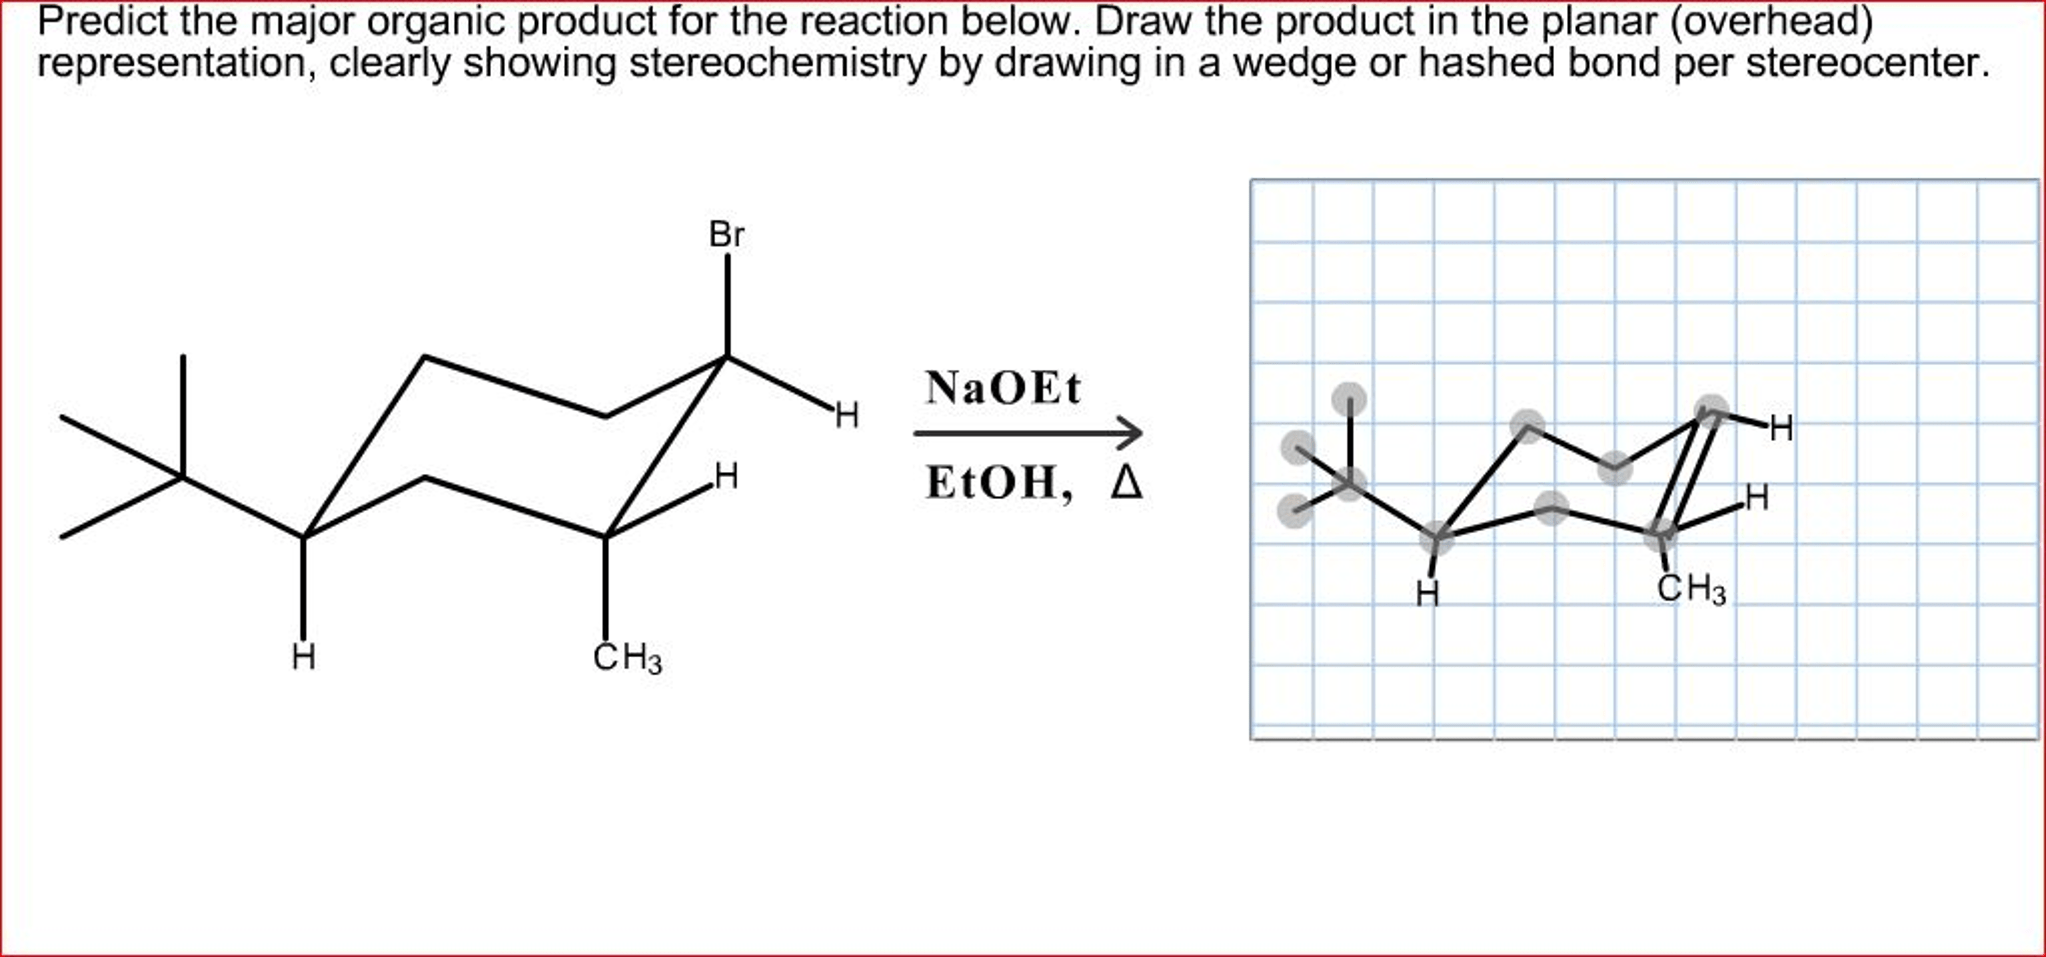 Solved: Predict The Major Organic Product For The Reaction